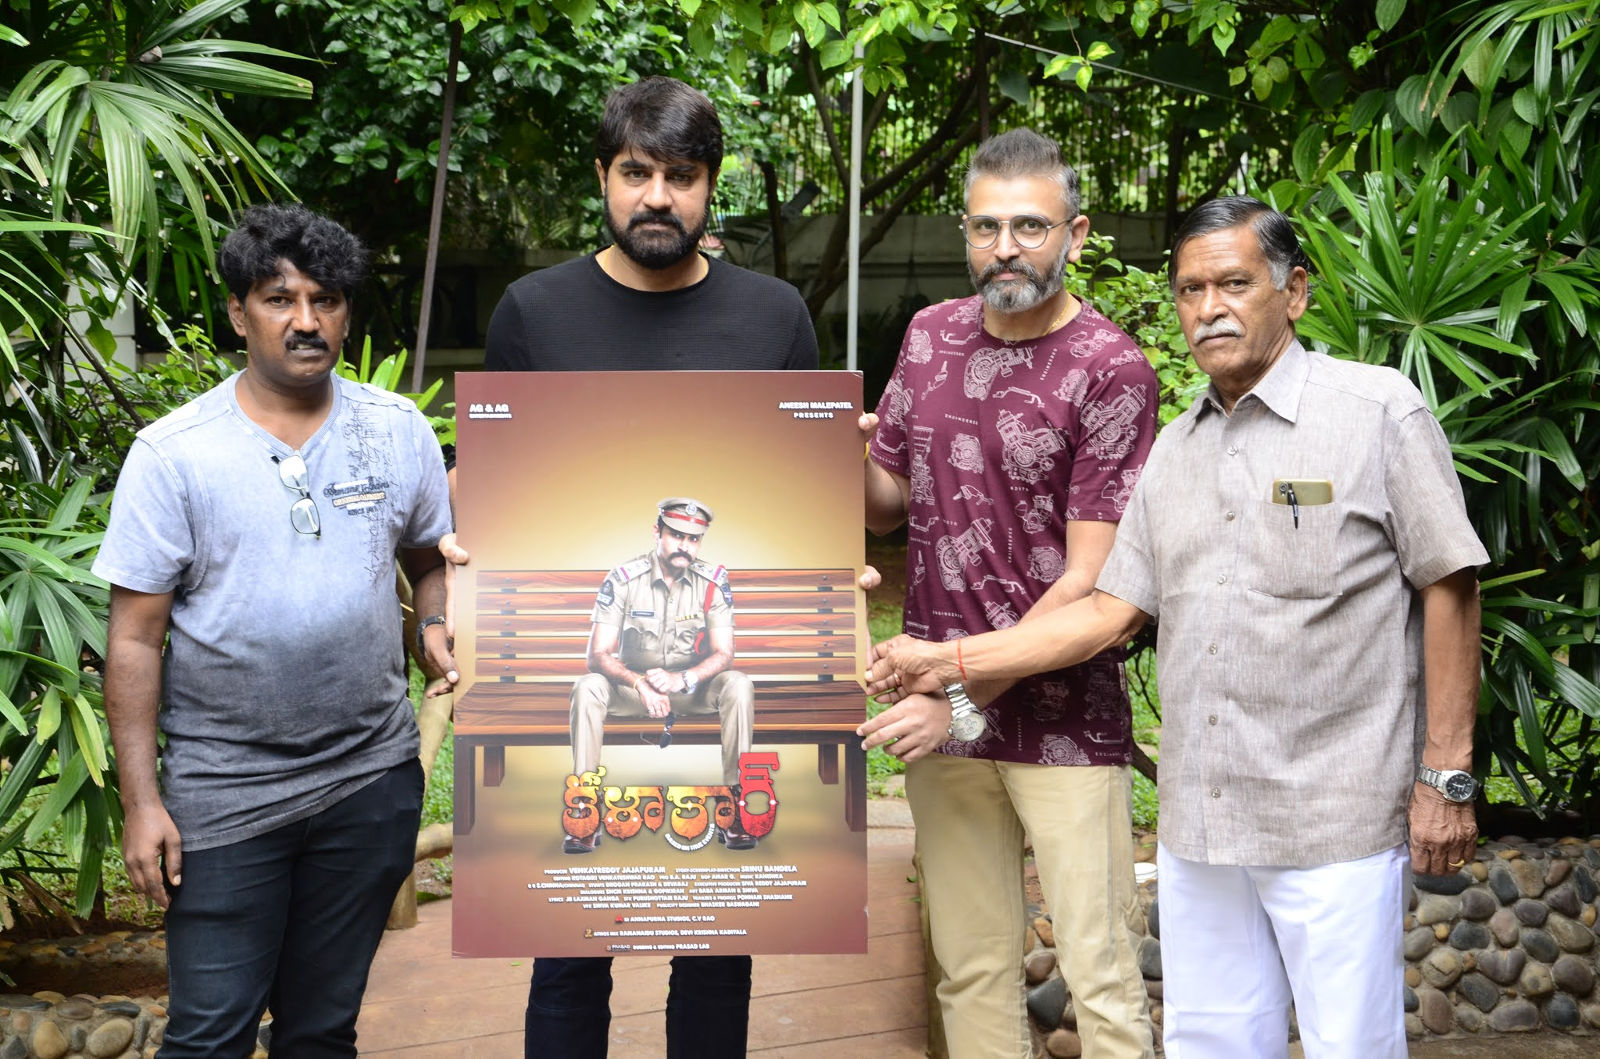 Srikanth Unveiled The First Look Poster Of Hero Rohith Latest Action Entertainer Kalaakaar